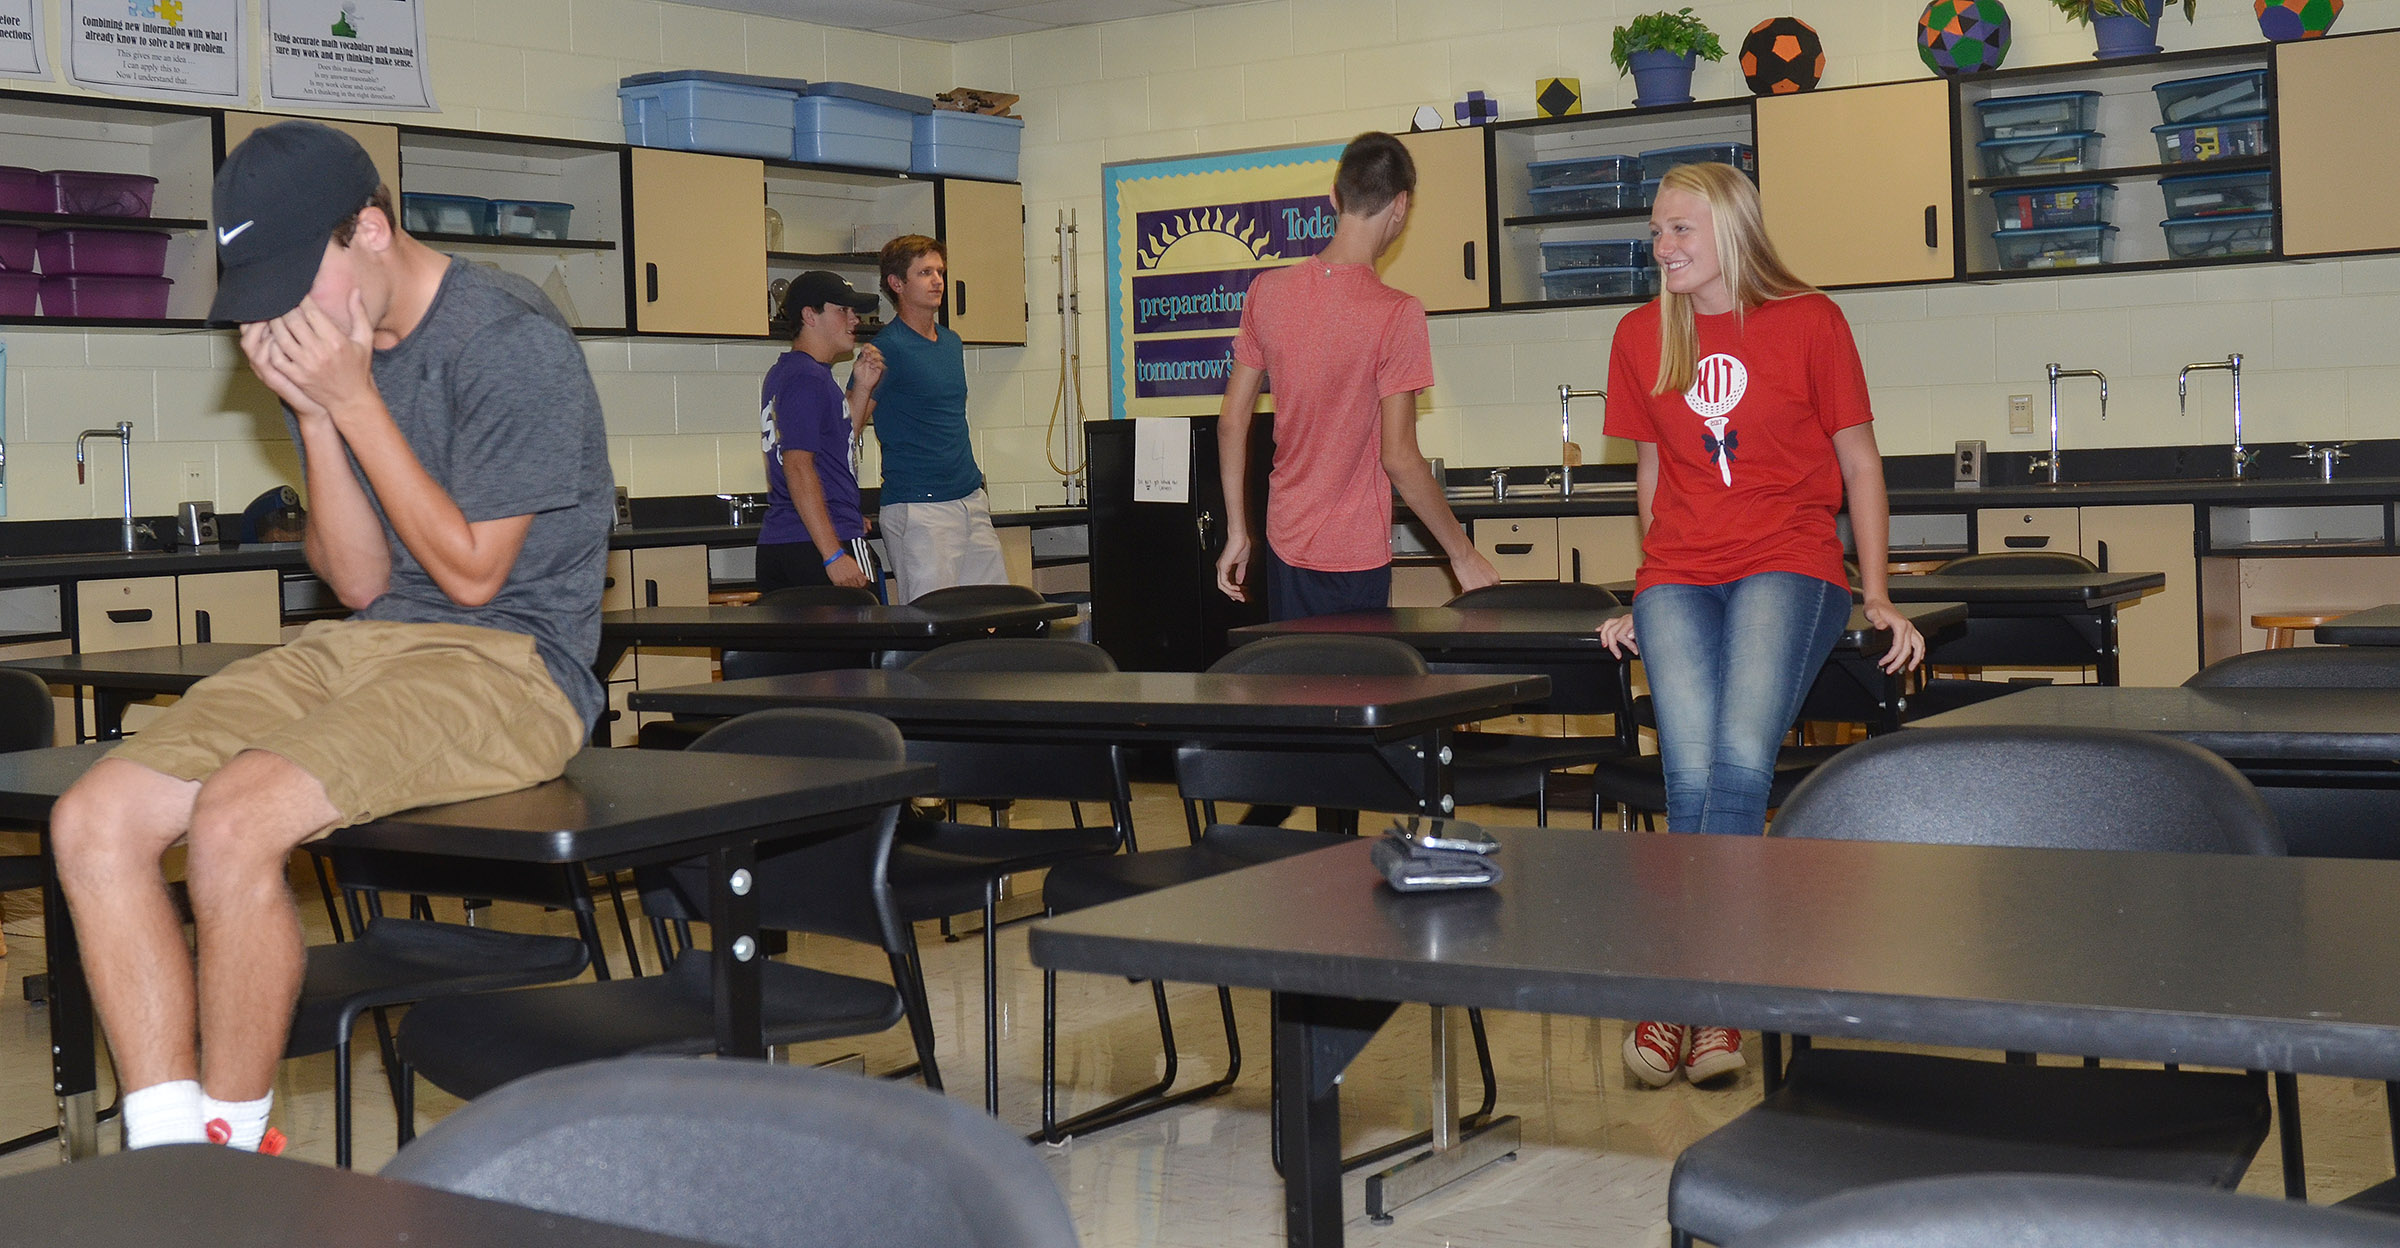 CHS junior Layton Hord plays four corners with his fellow FCA members.